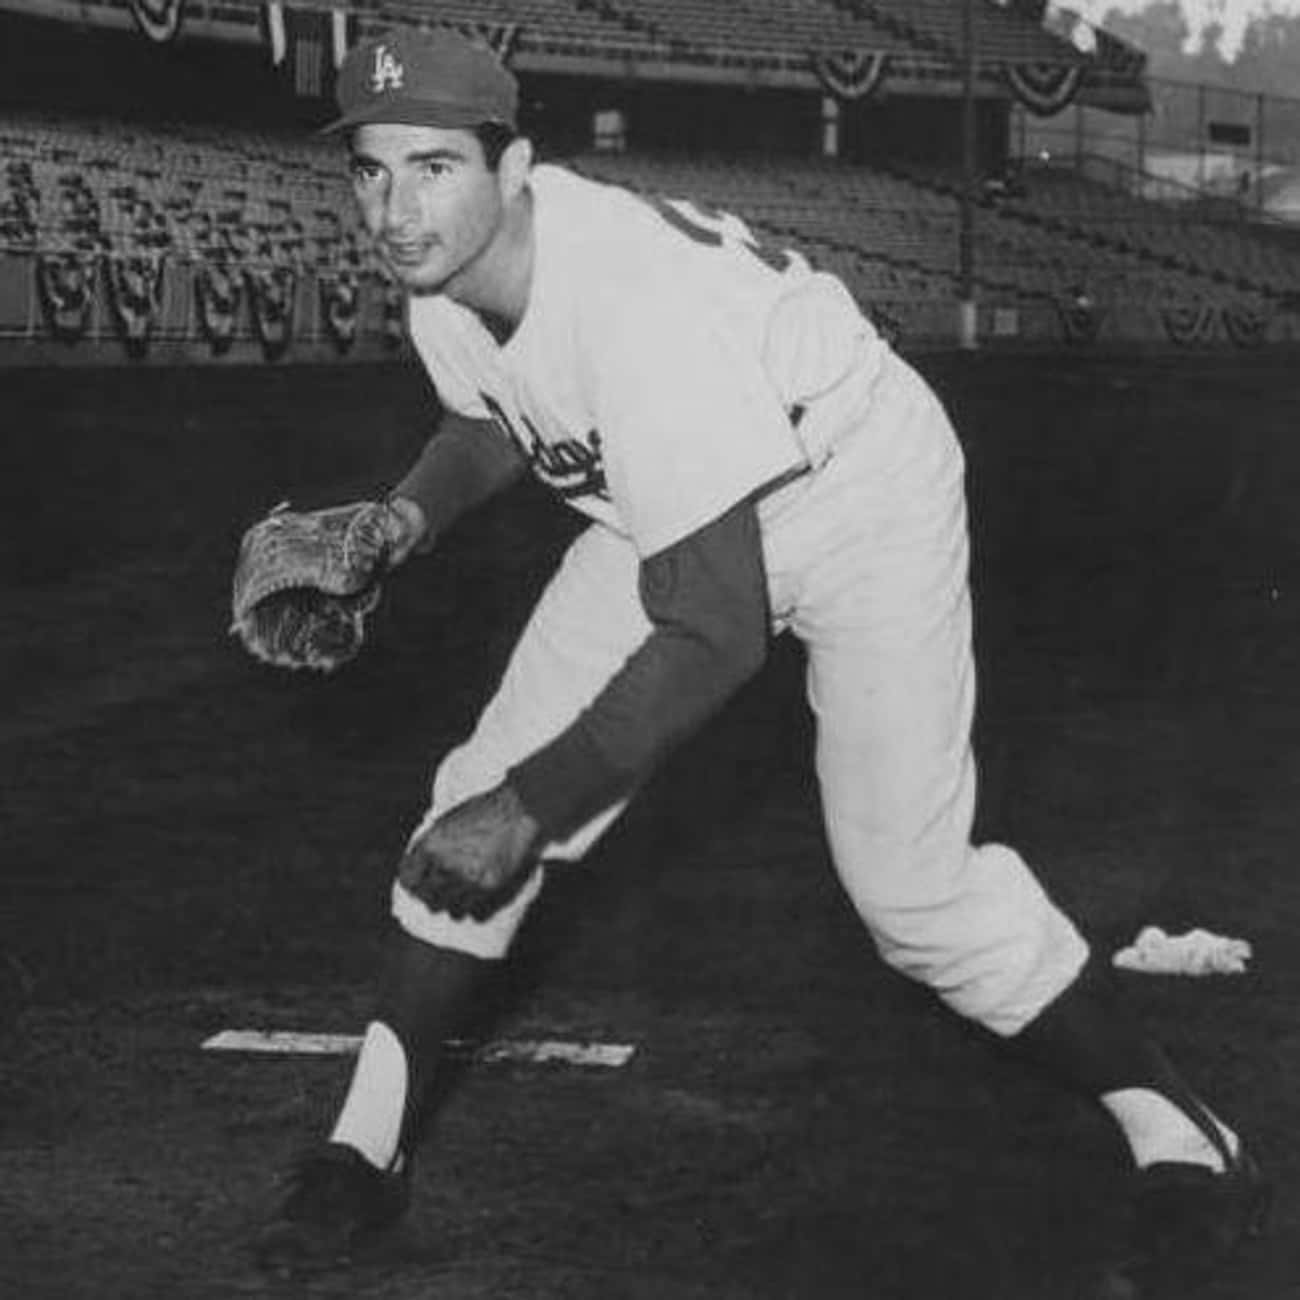 Sandy Koufax is listed (or ranked) 3 on the list MLB Players Whose Careers Ended Too Soon